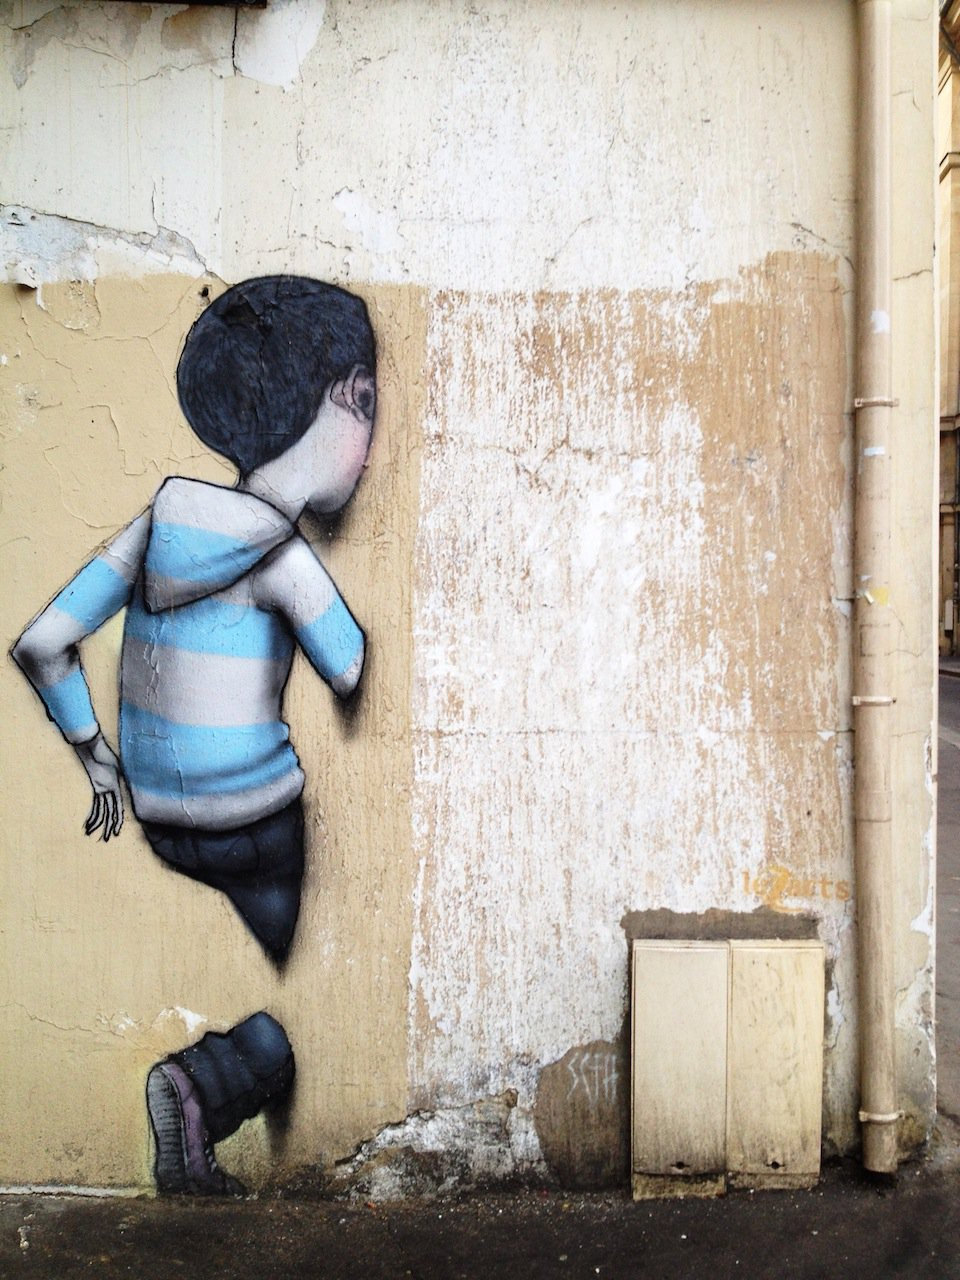 Of The Craziest Street Wall Artwork From Around The World_018